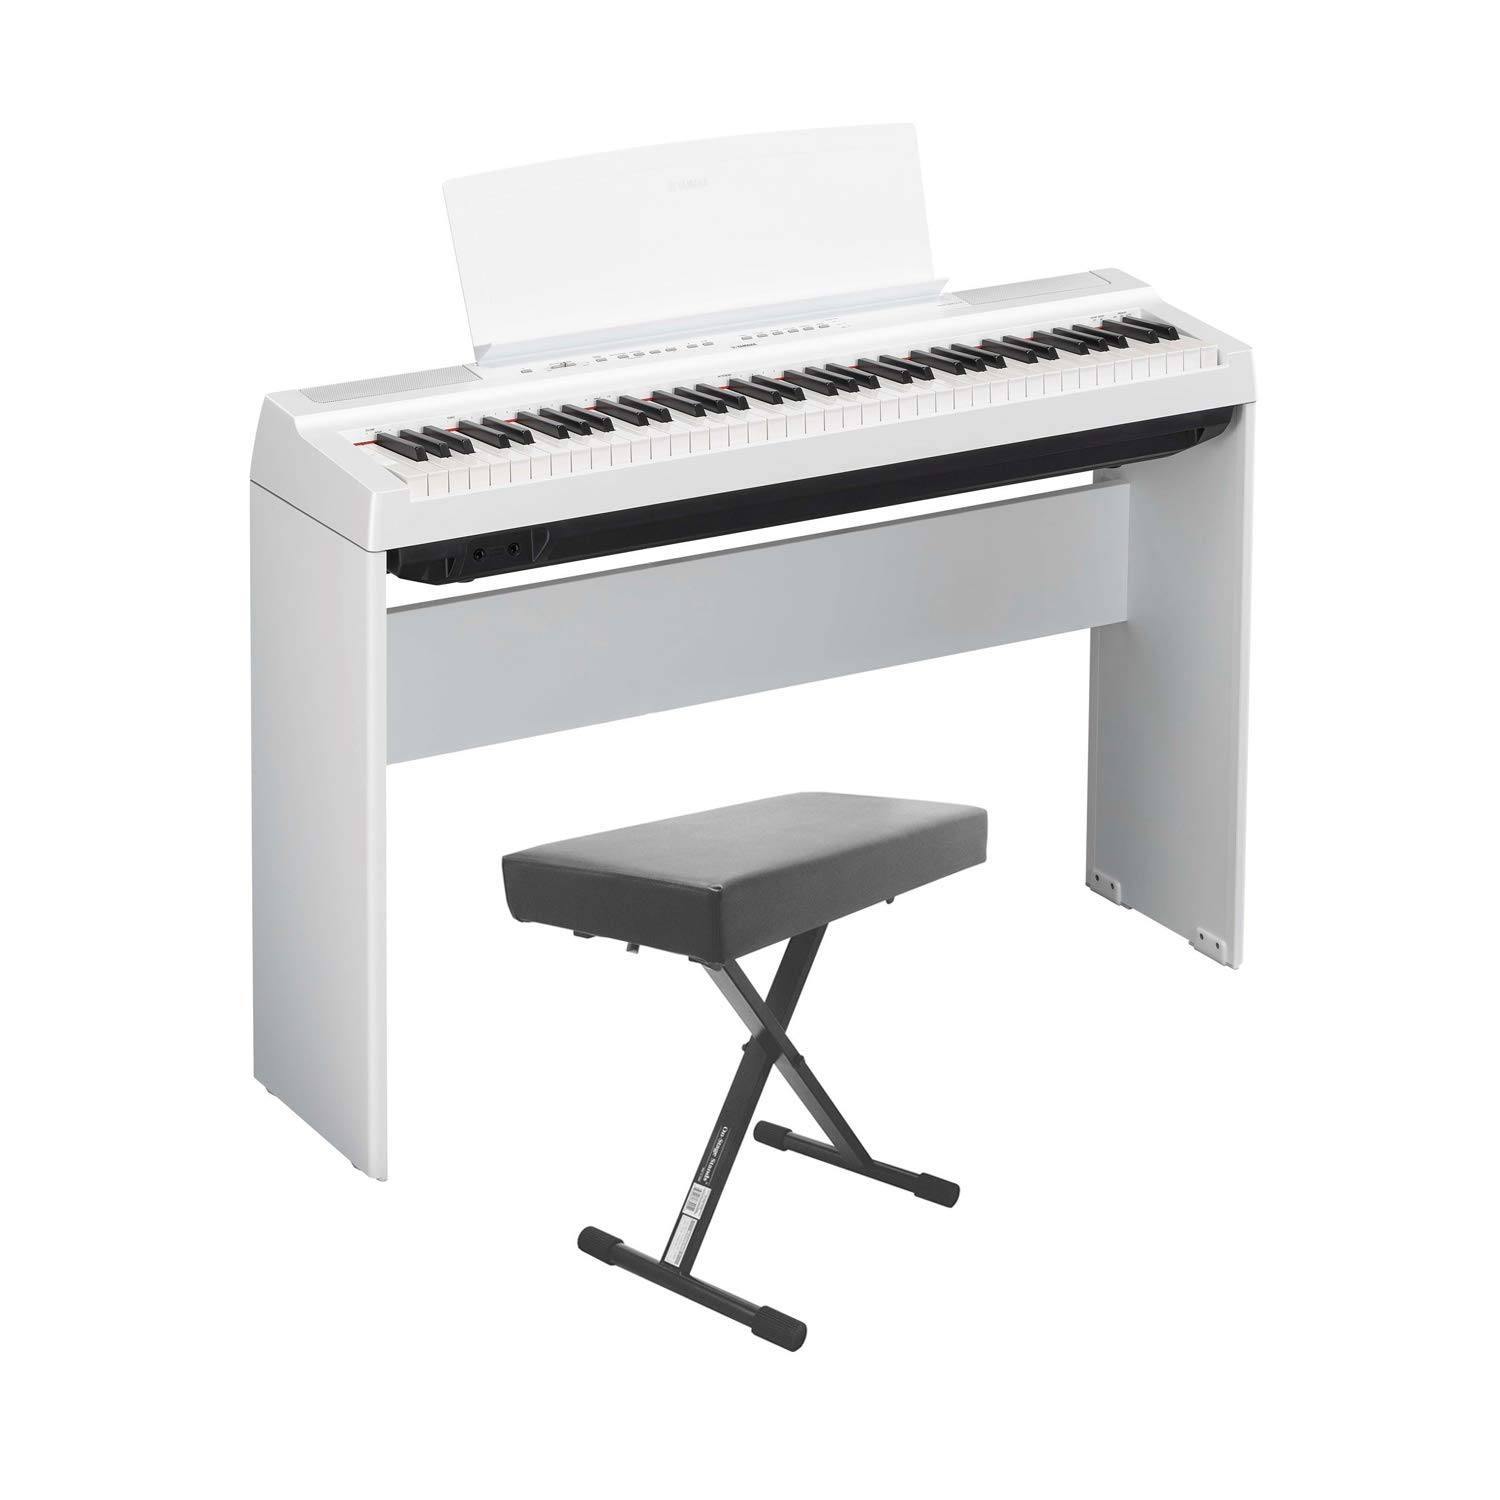 Yamaha P121 73-Key Weighted Action Digital Piano - White with Matching L121 White Furniture Stand and Bench by Yamaha Bundle (Image #1)